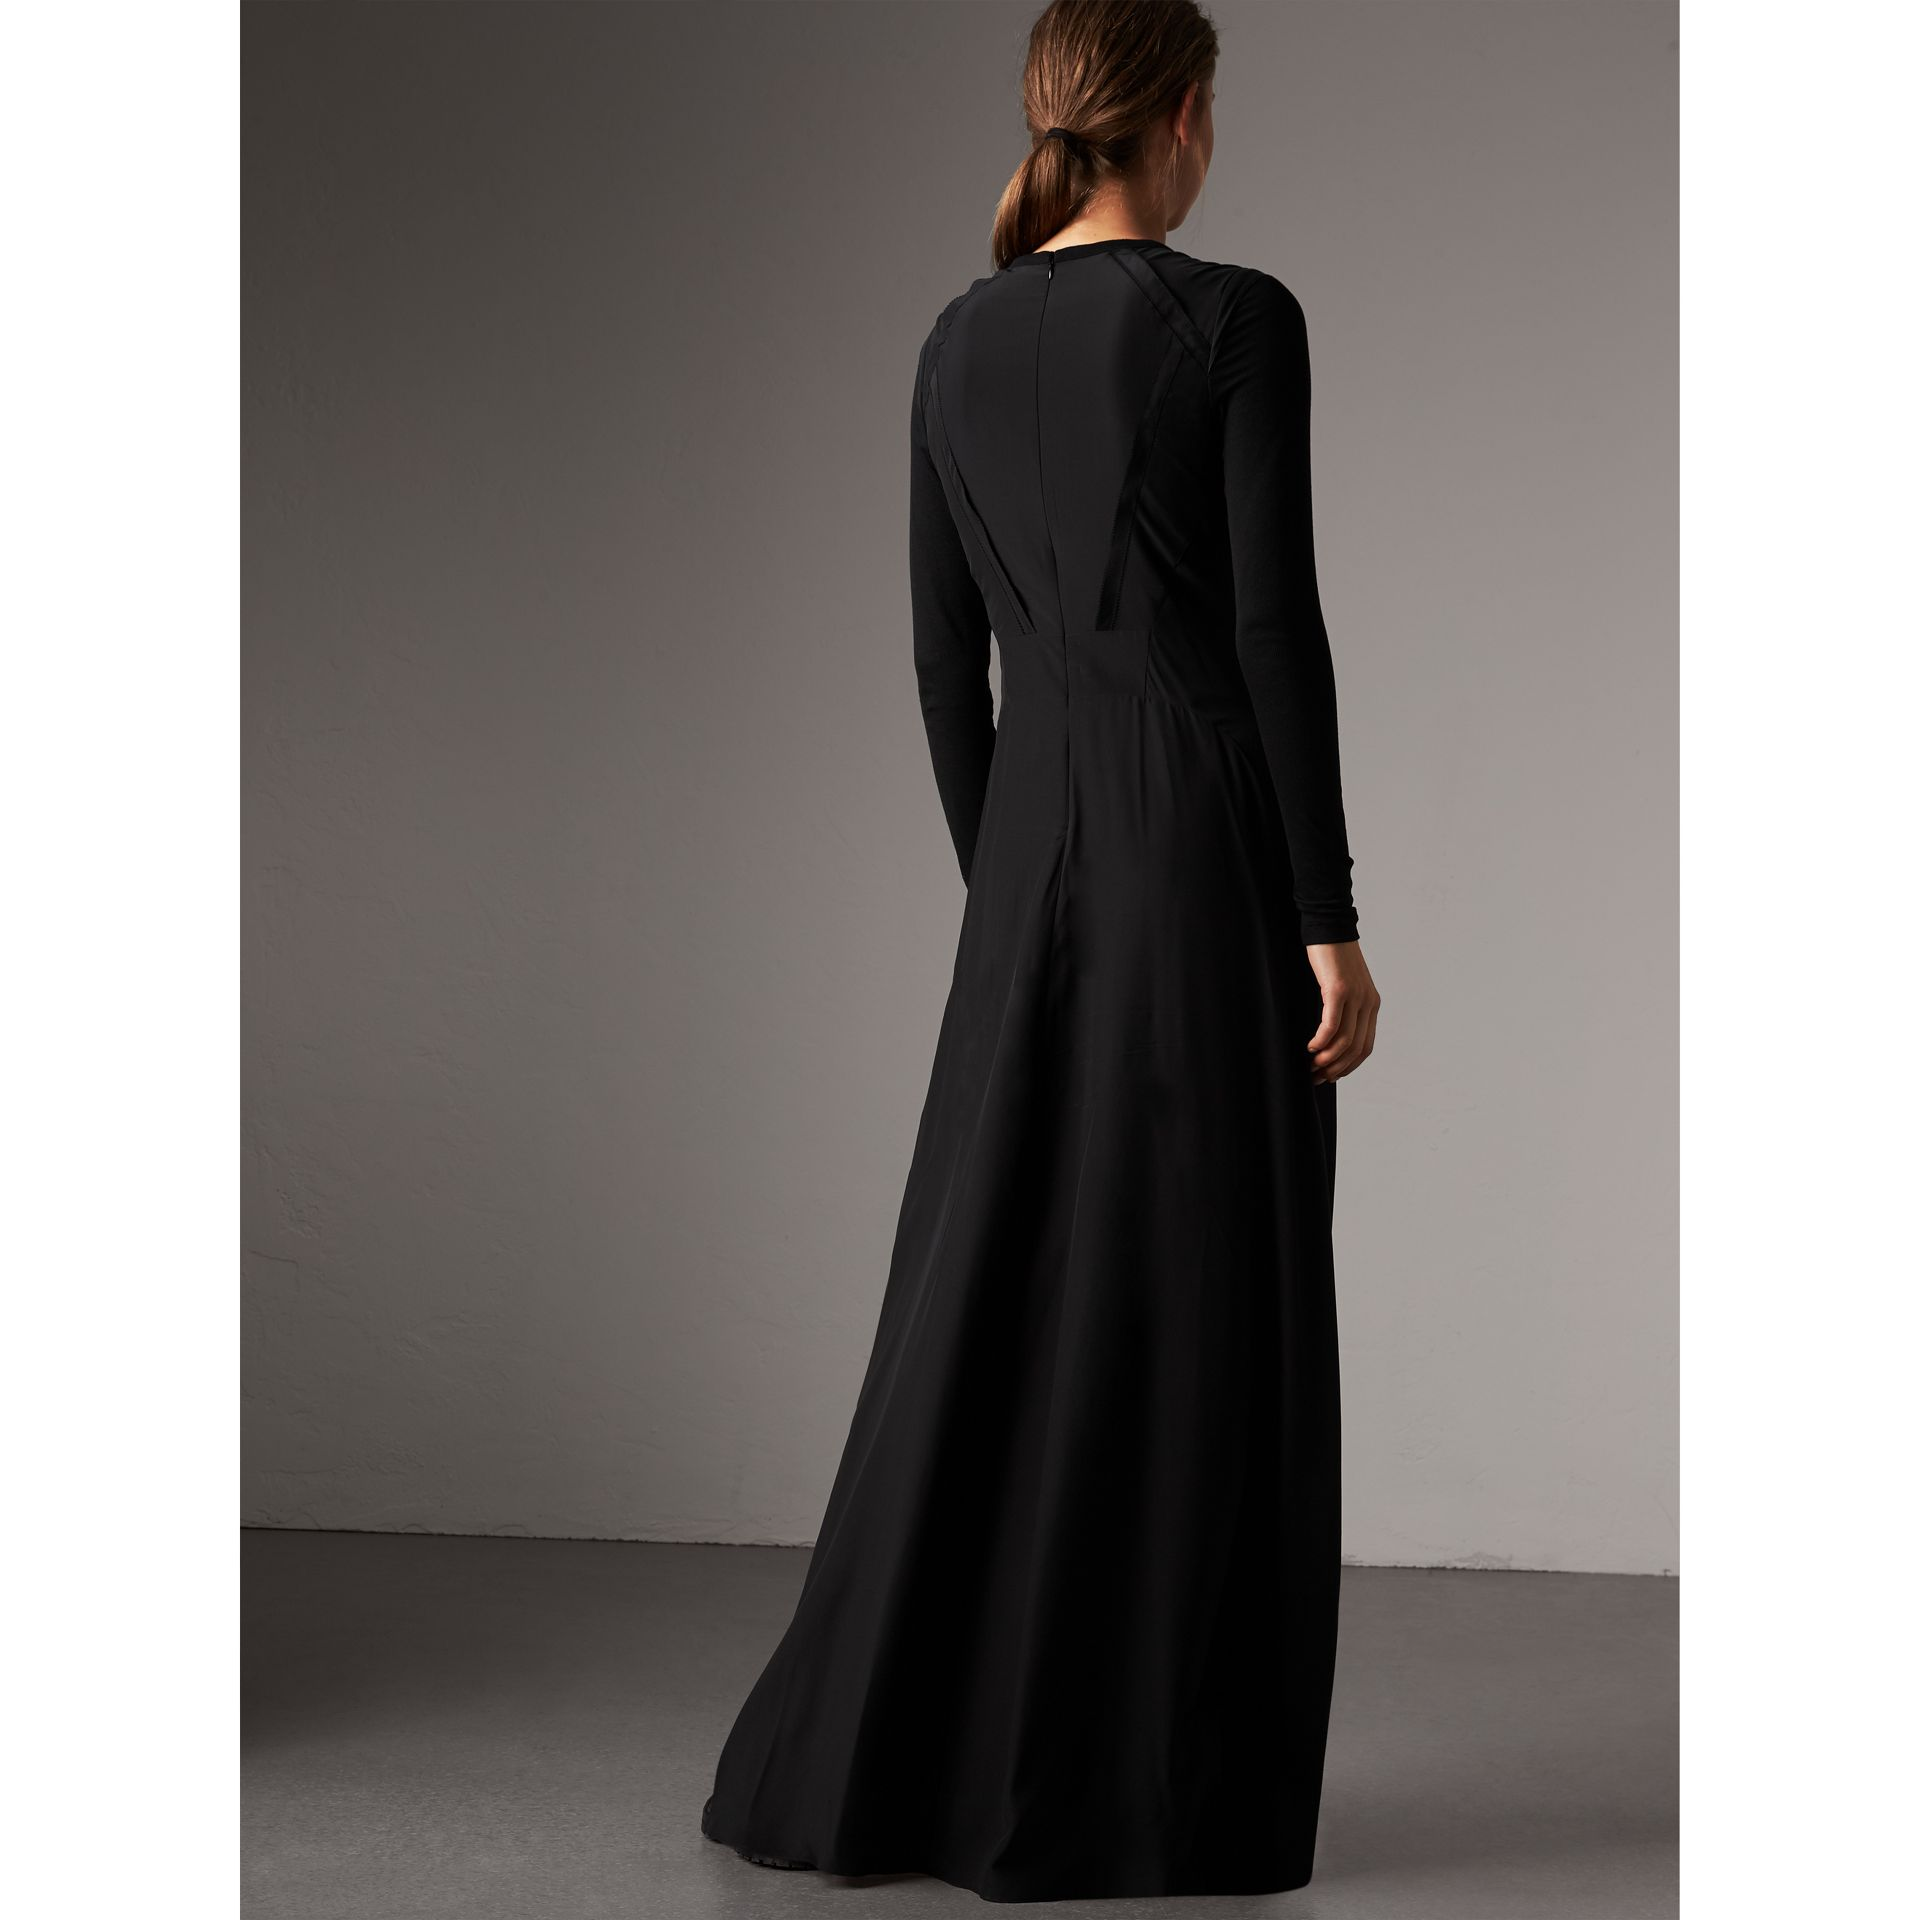 Silk Floor-length Gathered Dress in Black - Women | Burberry United Kingdom - gallery image 3